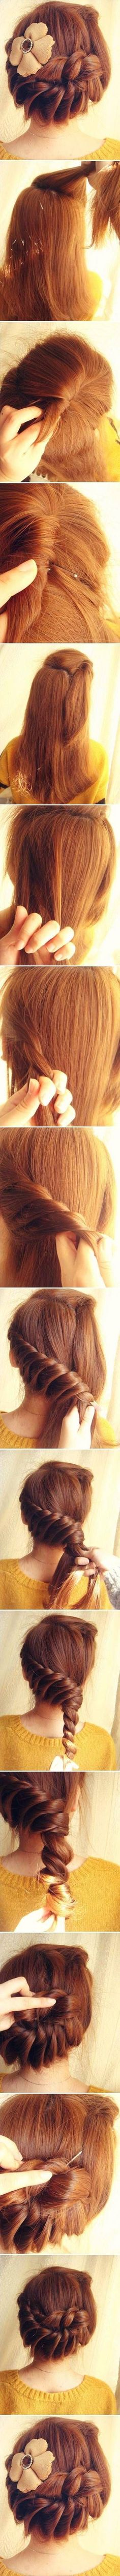 DIY hair Up-do...I think this would be cutie for certain functions #frenchtwistupdo